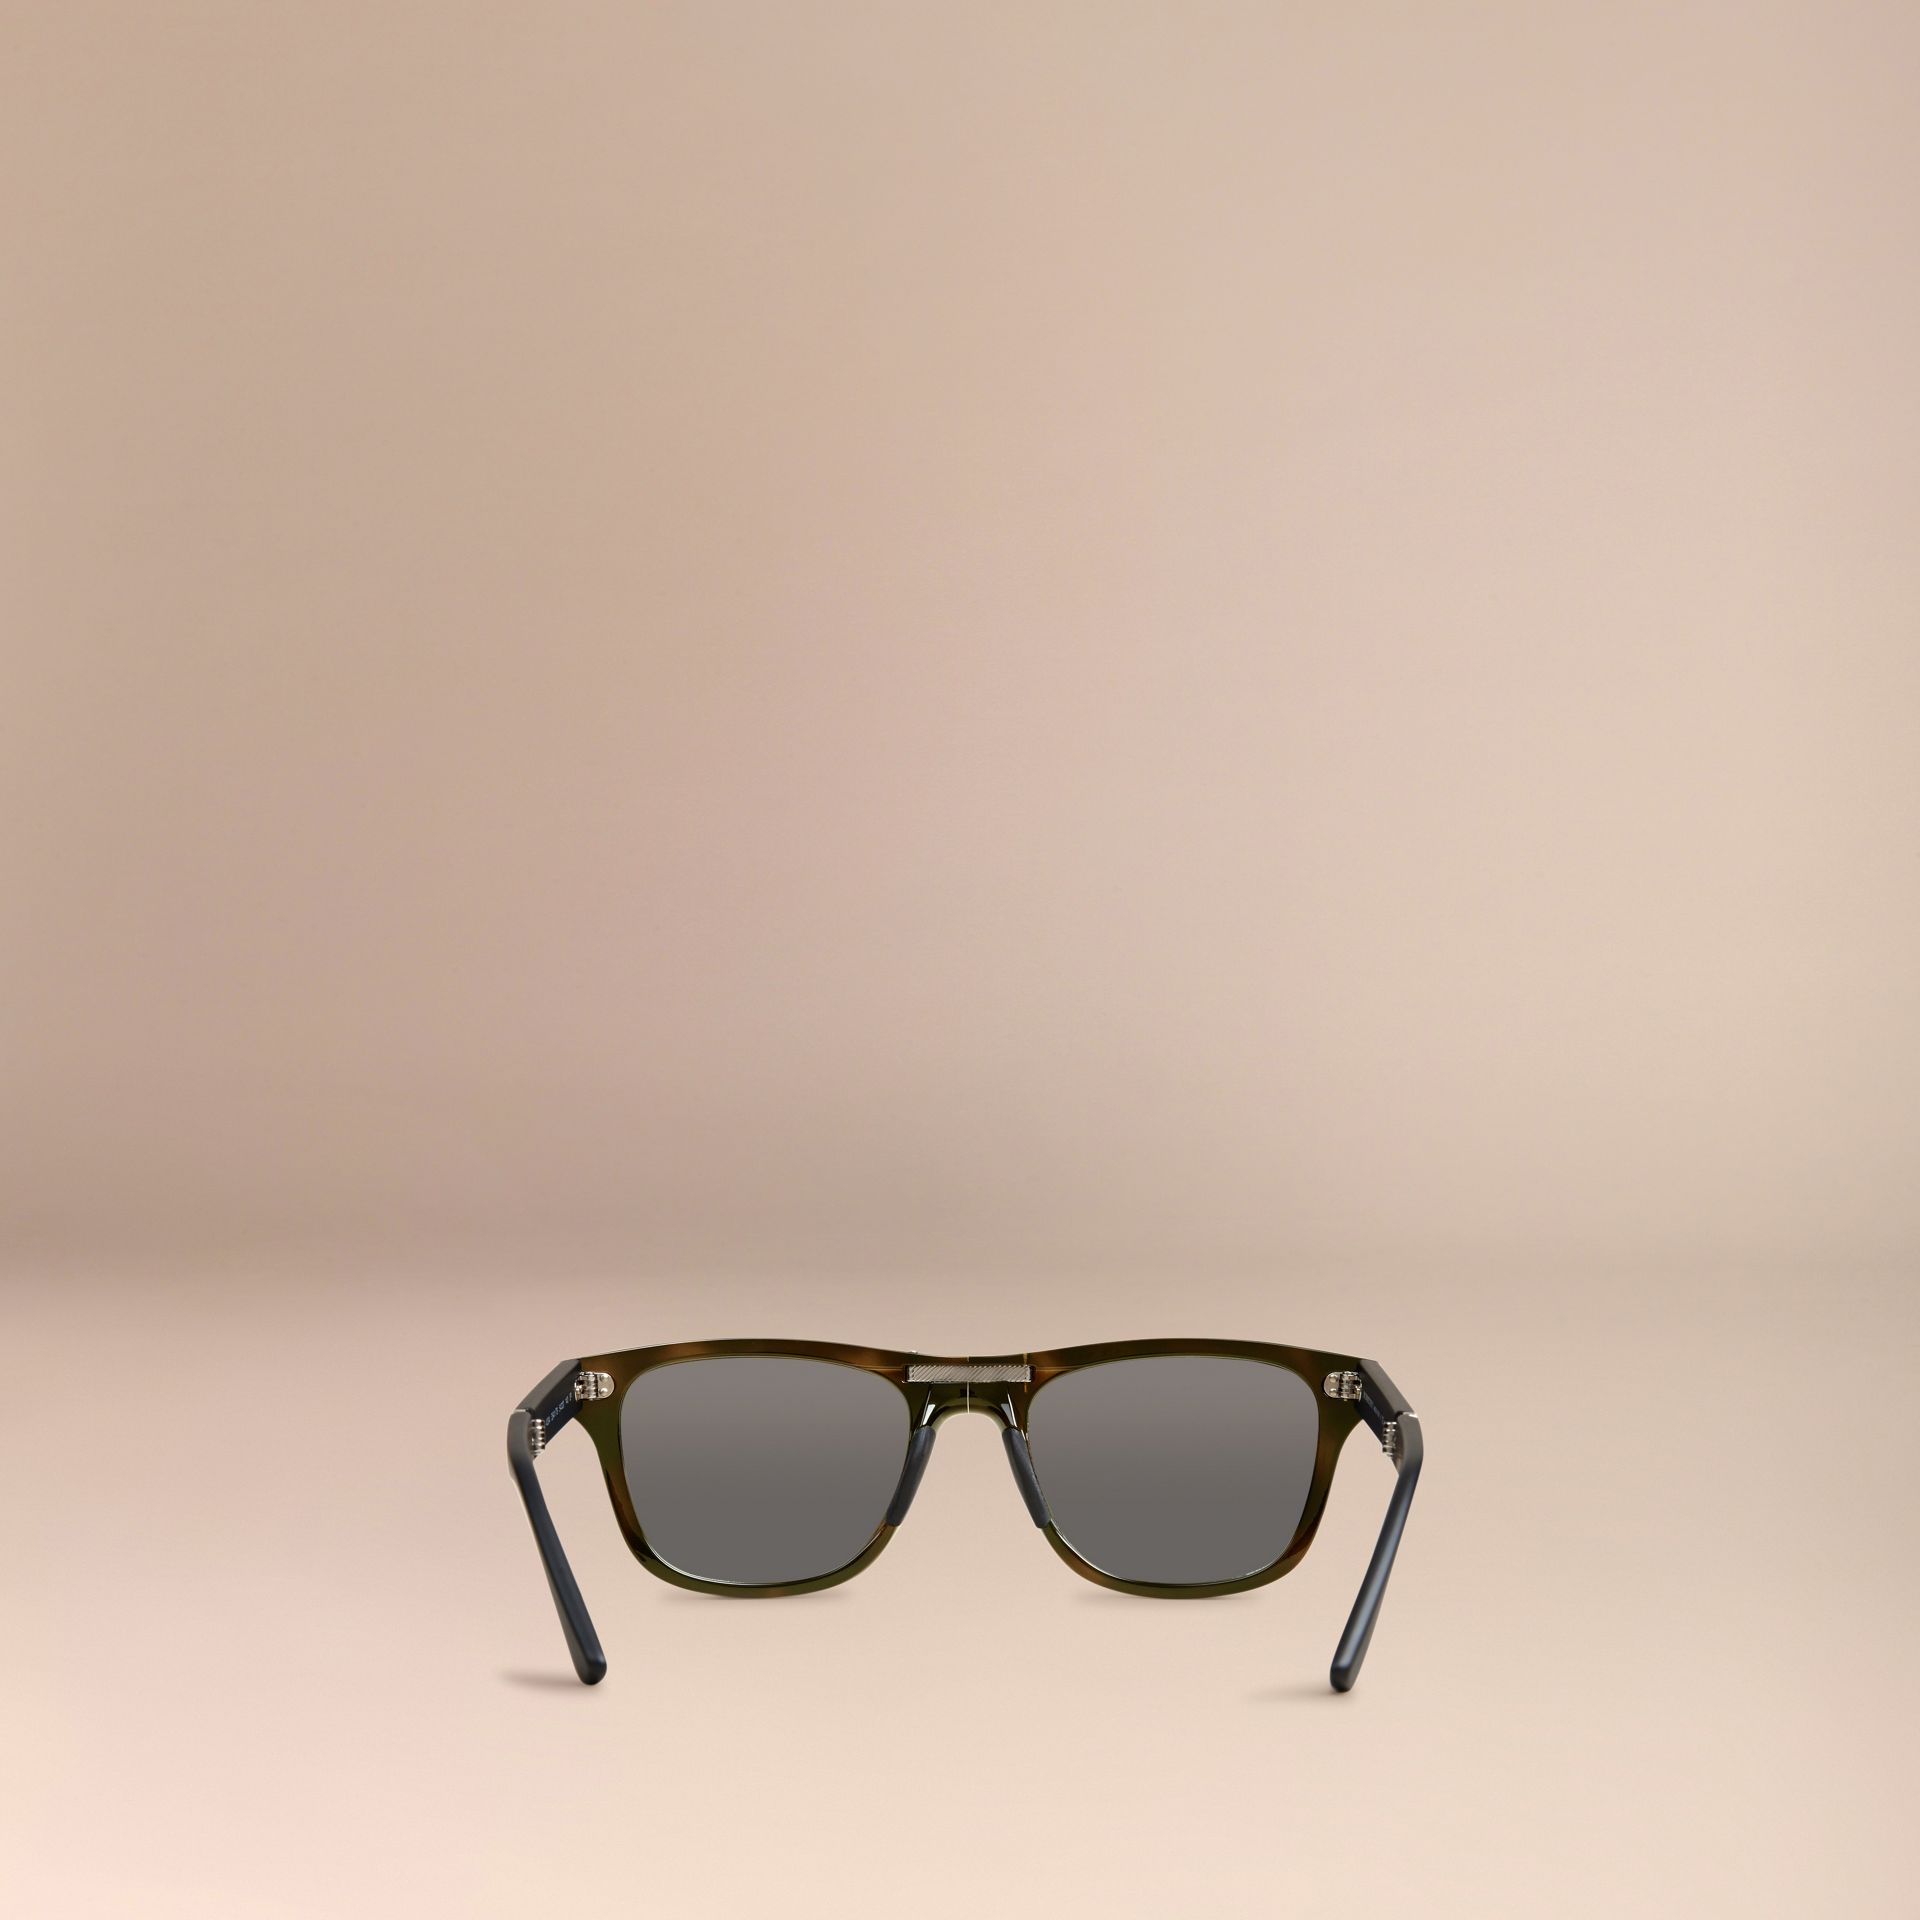 Folding Rectangular Frame Polarised Sunglasses in Grey - Men | Burberry - gallery image 3